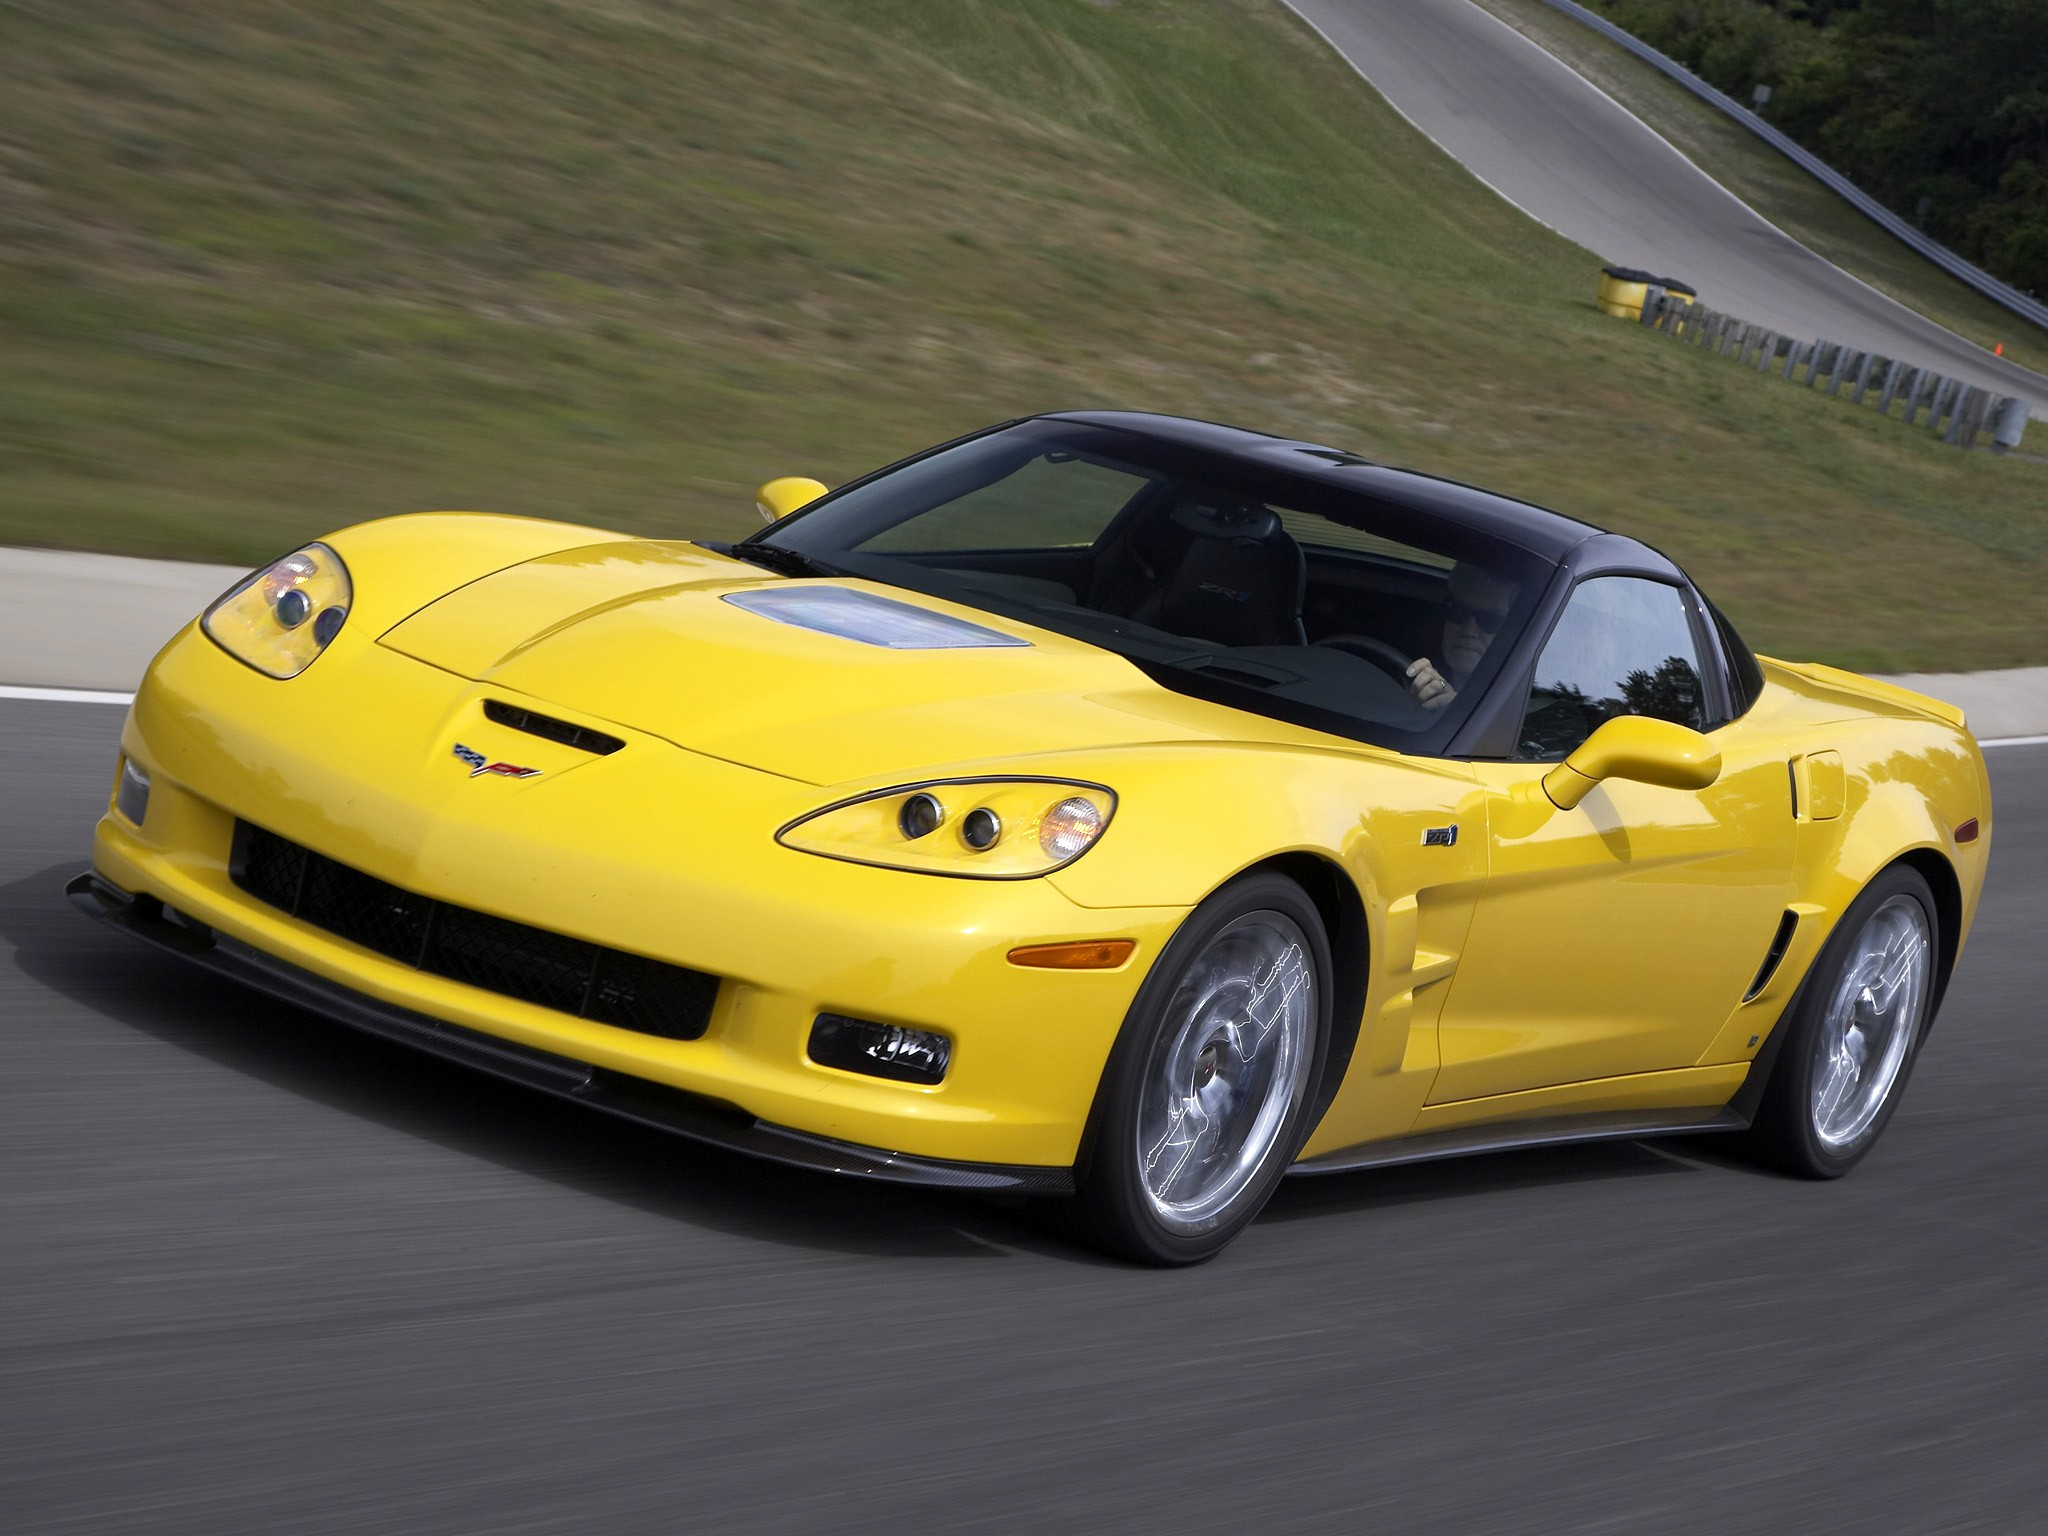 chevrolet corvette zr1 specs photos 2008 2009 2010. Black Bedroom Furniture Sets. Home Design Ideas